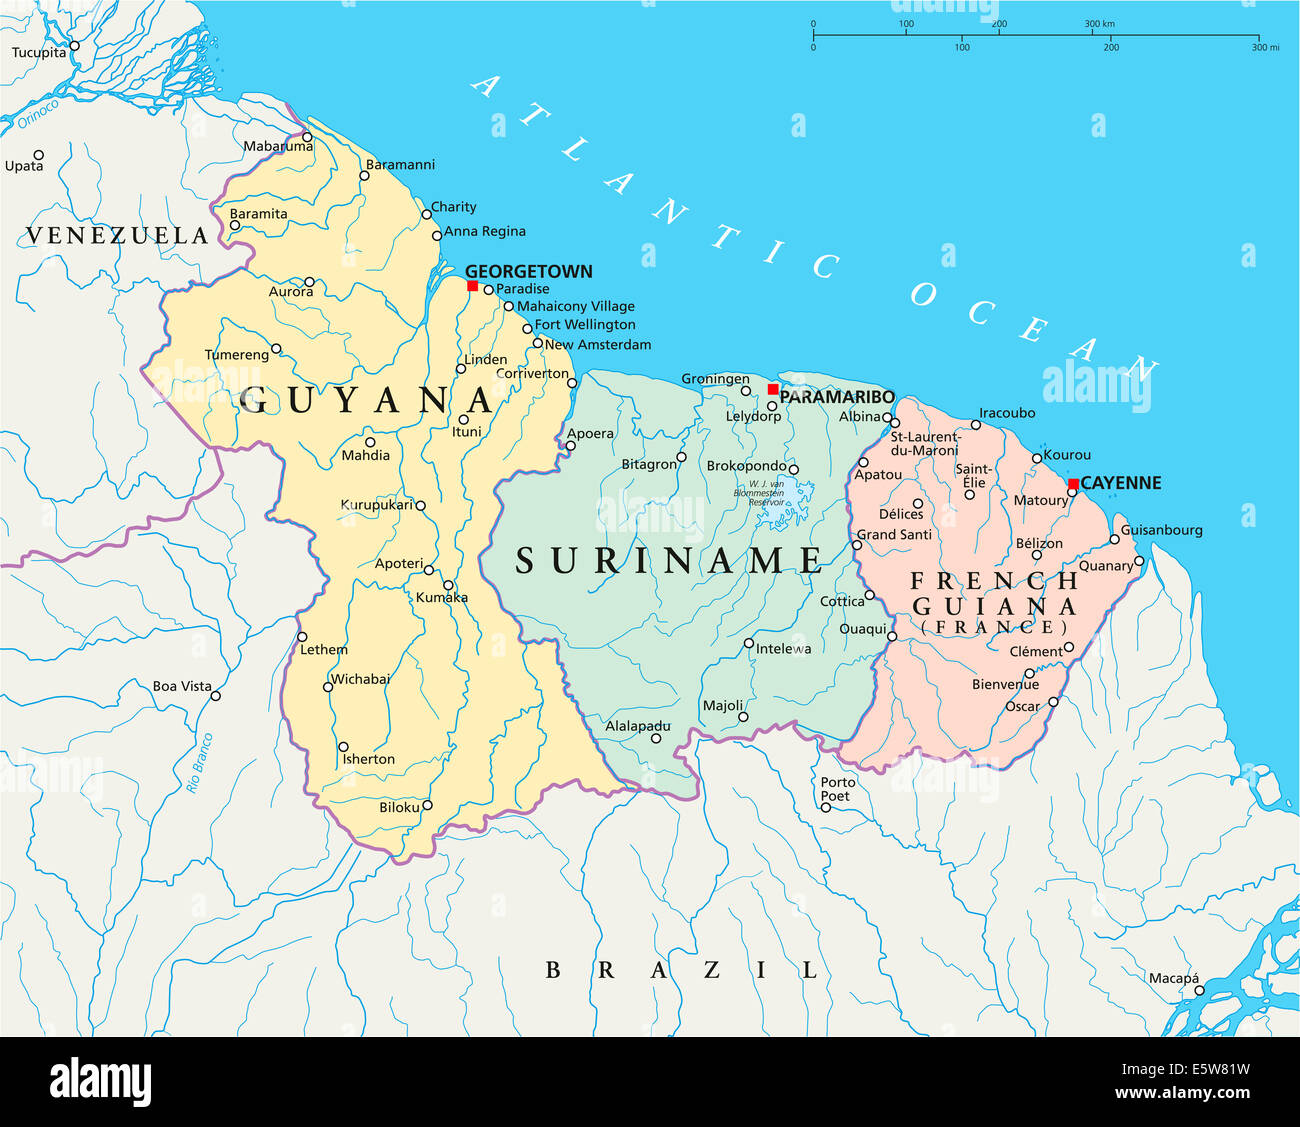 Guyana Suriname And French Guiana Political Map Stock Photo - Map of french guiana world